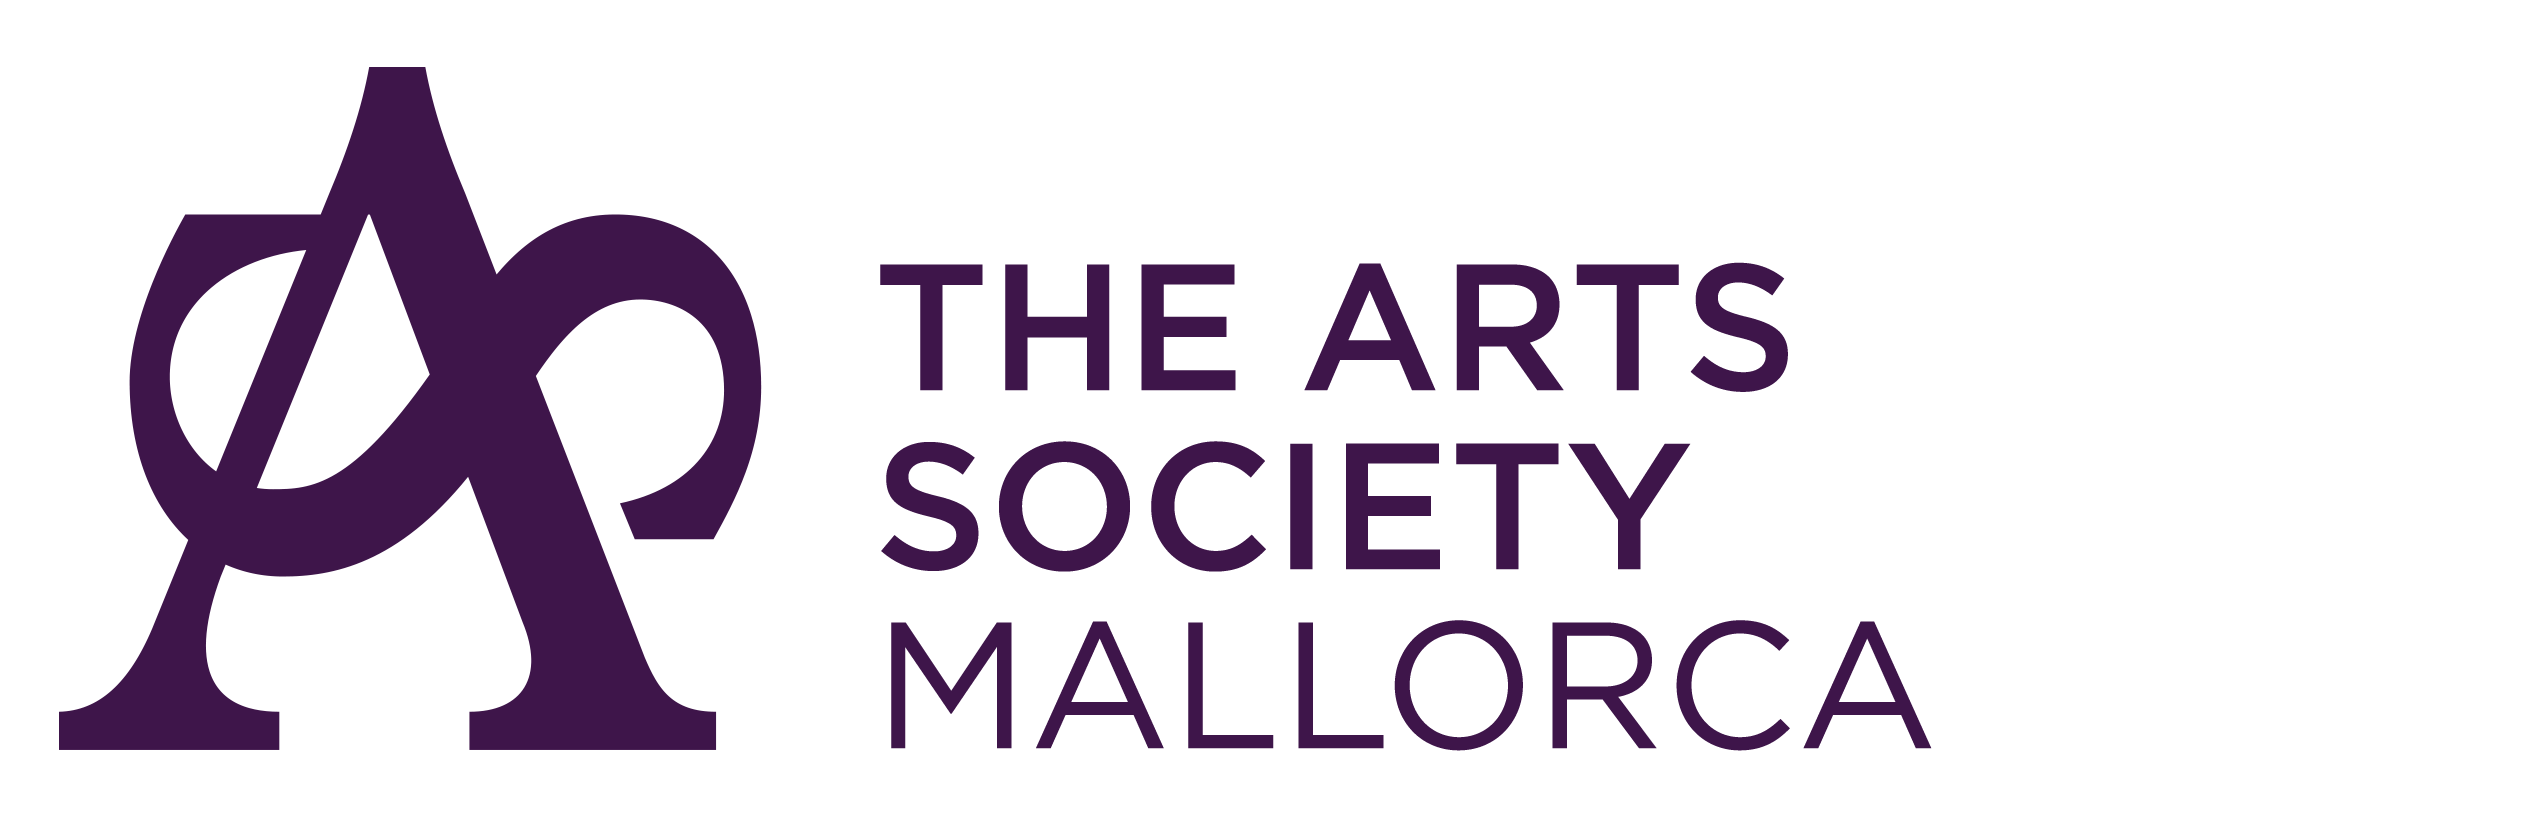 The Arts Society